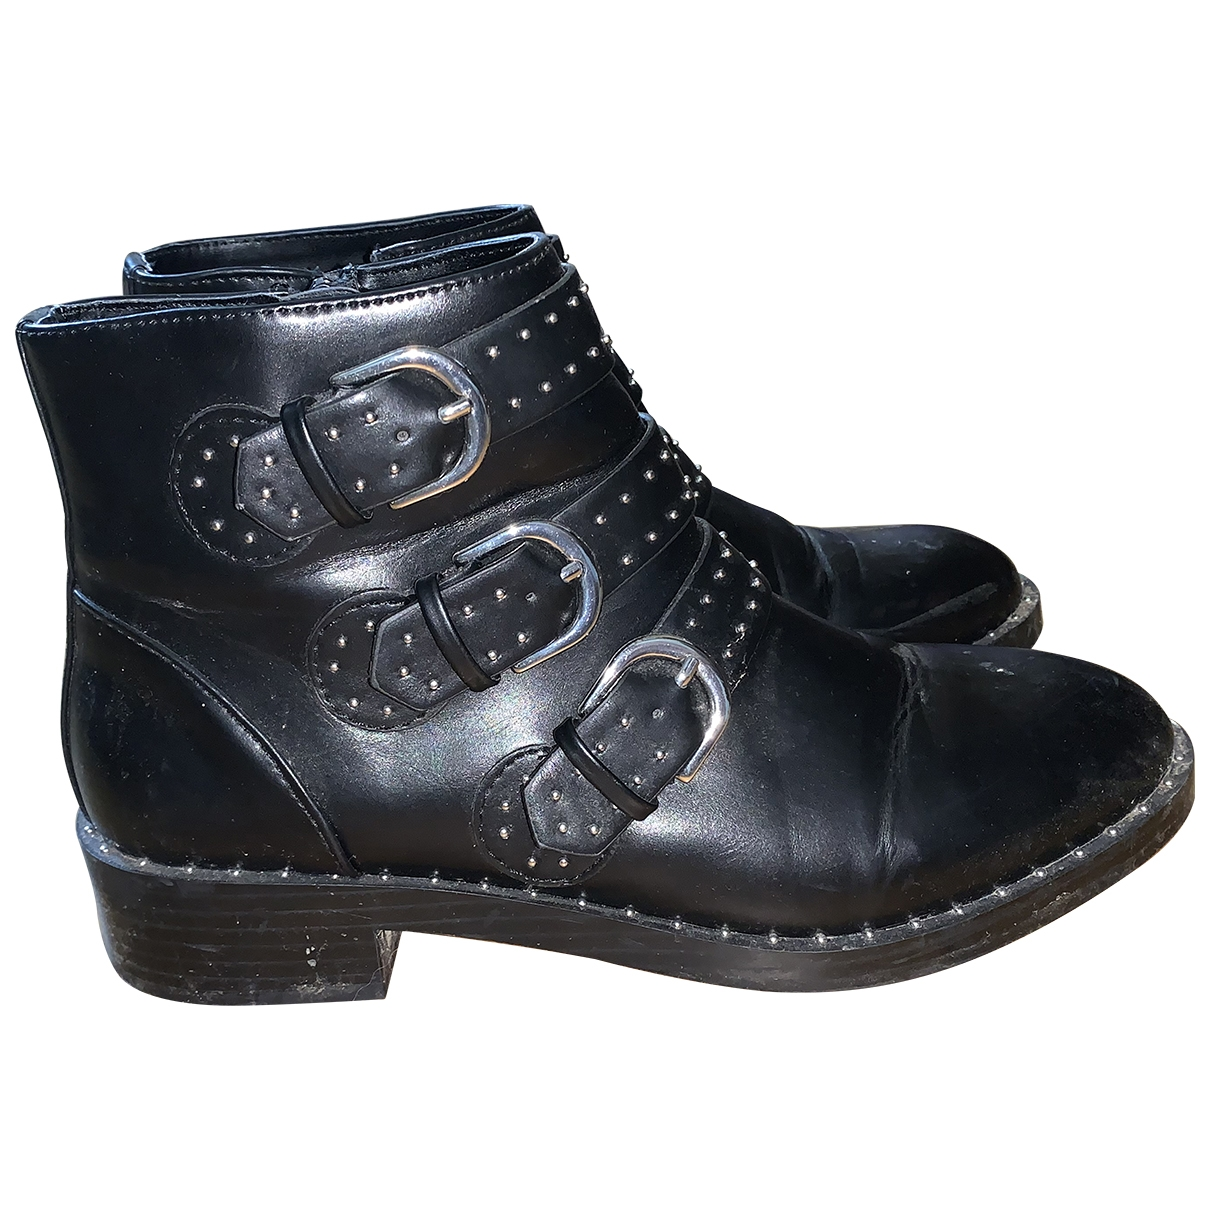 Asos \N Black Leather Boots for Women 39 EU